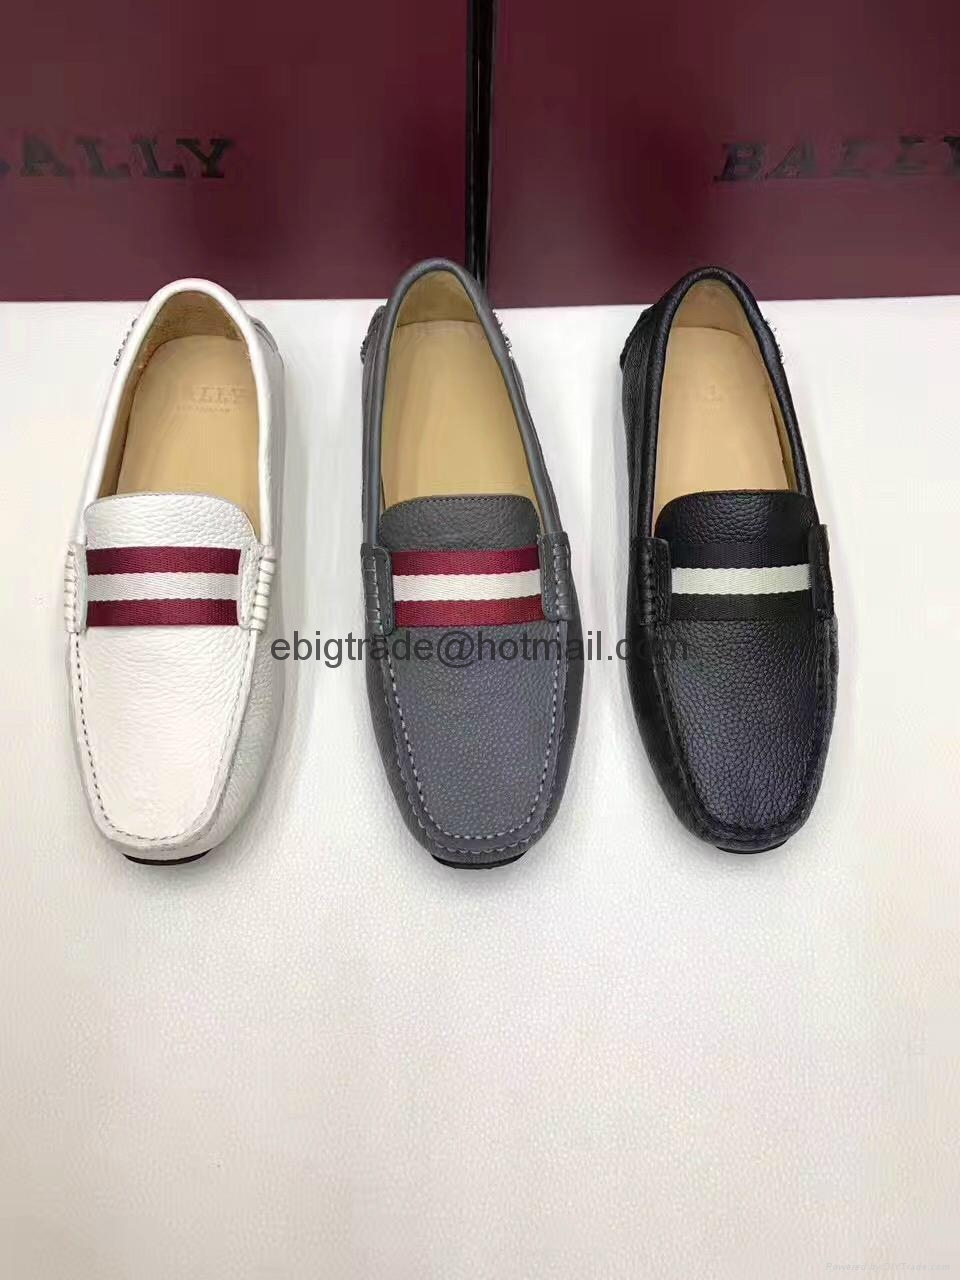 bally shoes for sale